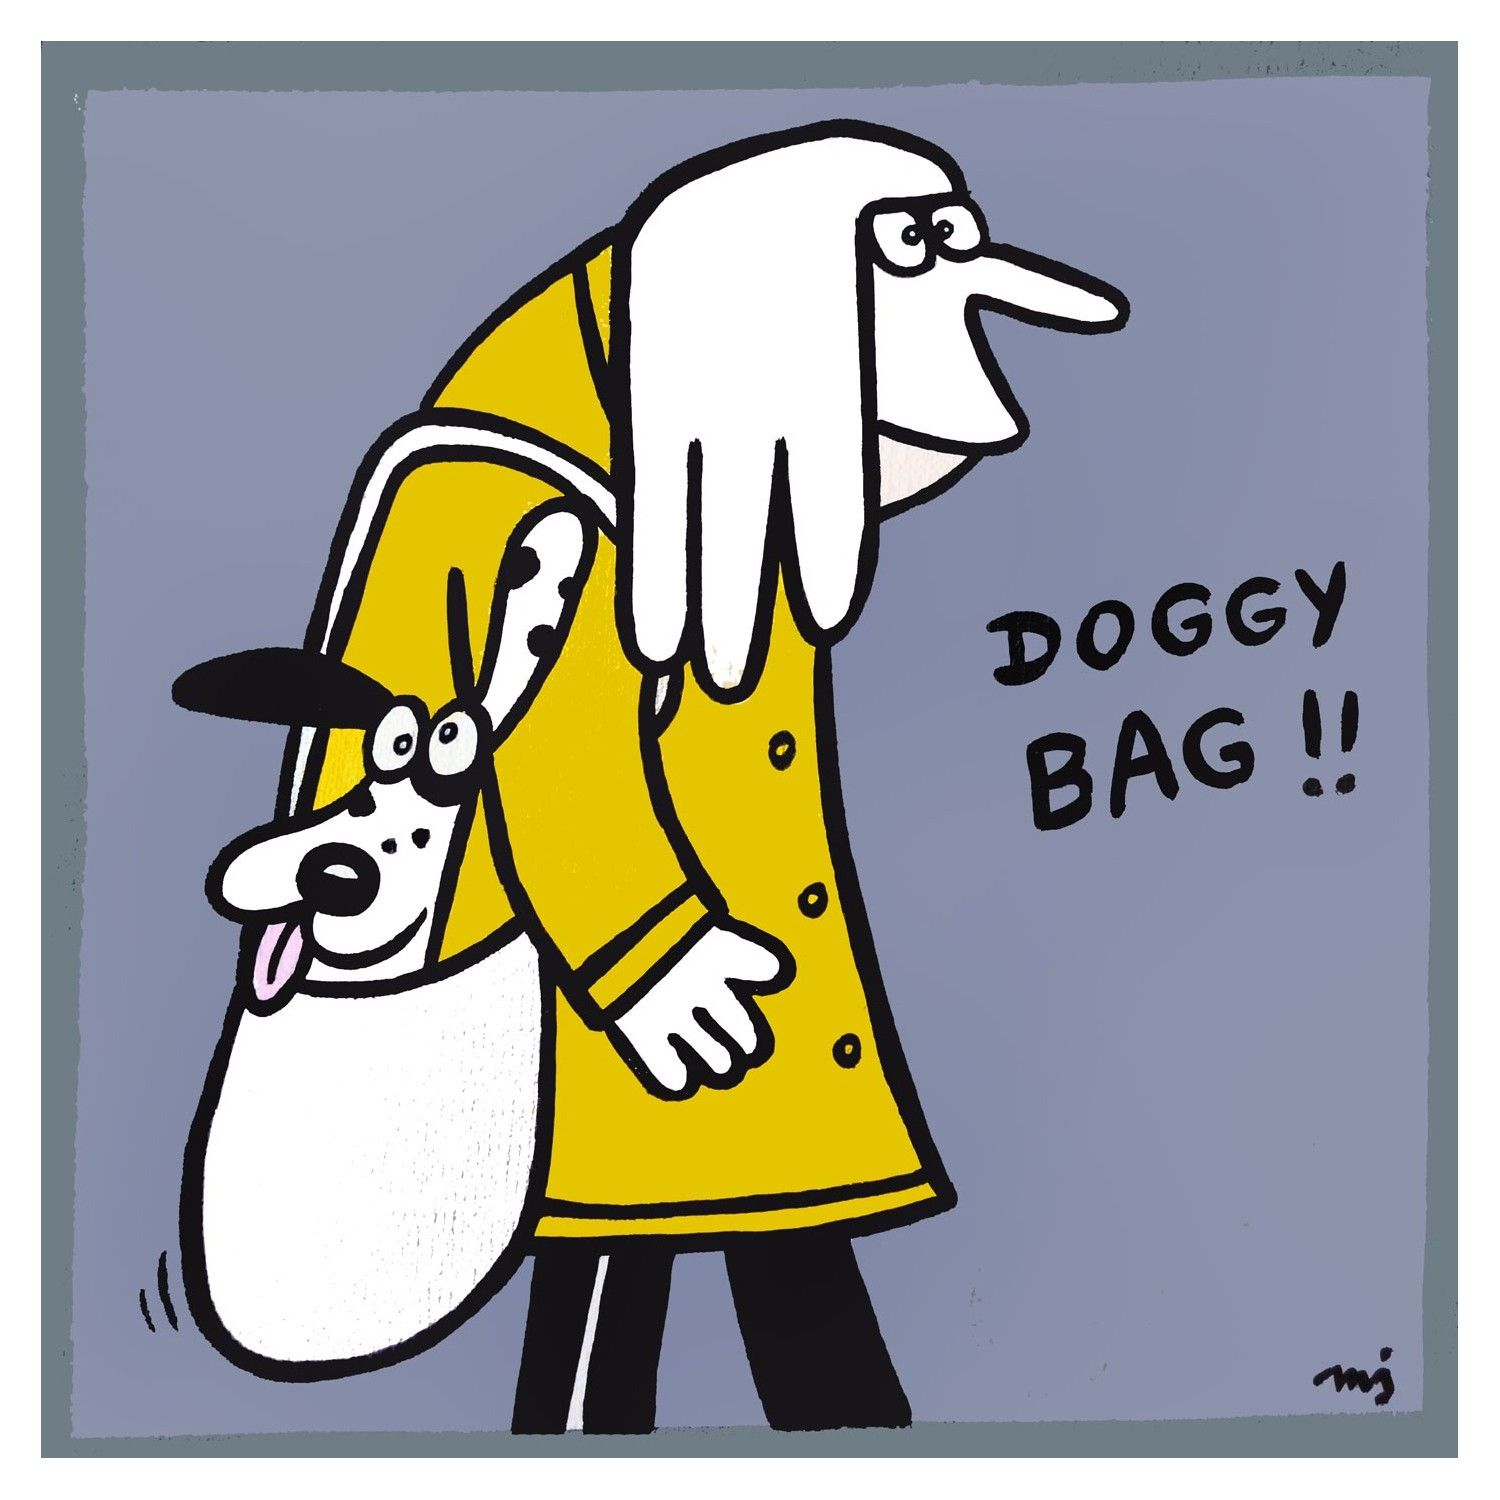 DOGGY BAG !!